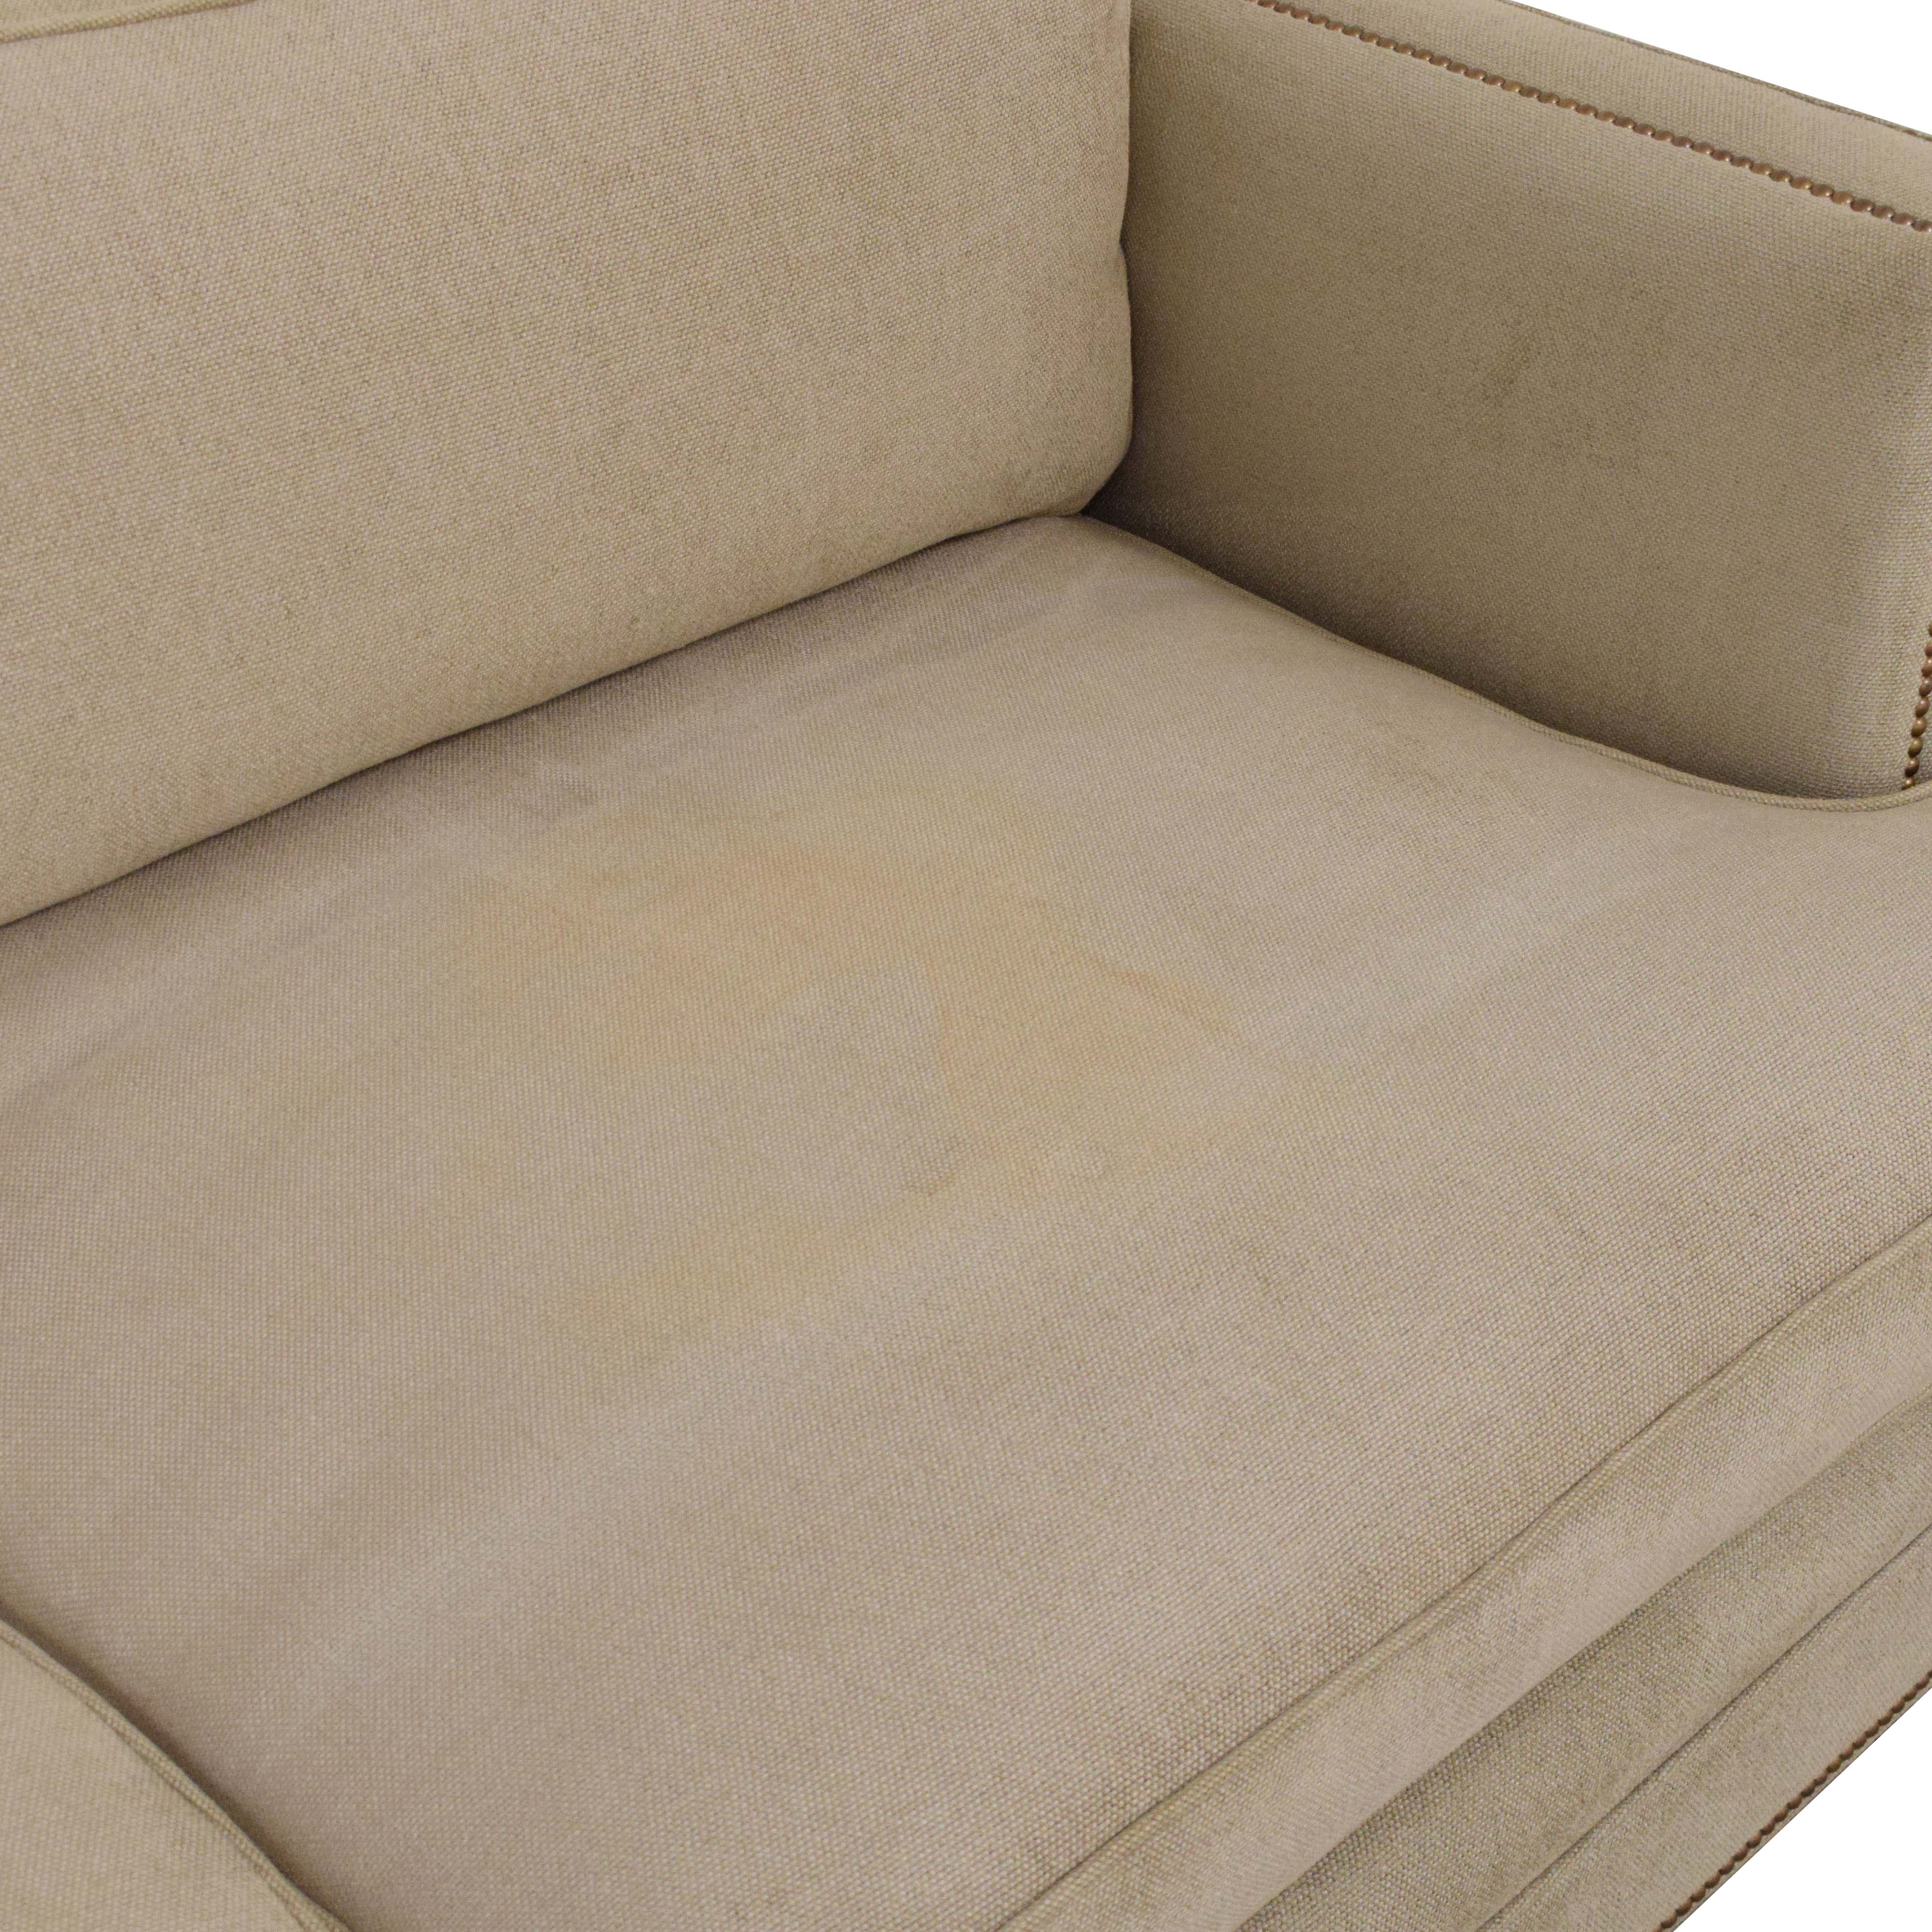 HB Home HB Home Coco Track Arm Sofa discount